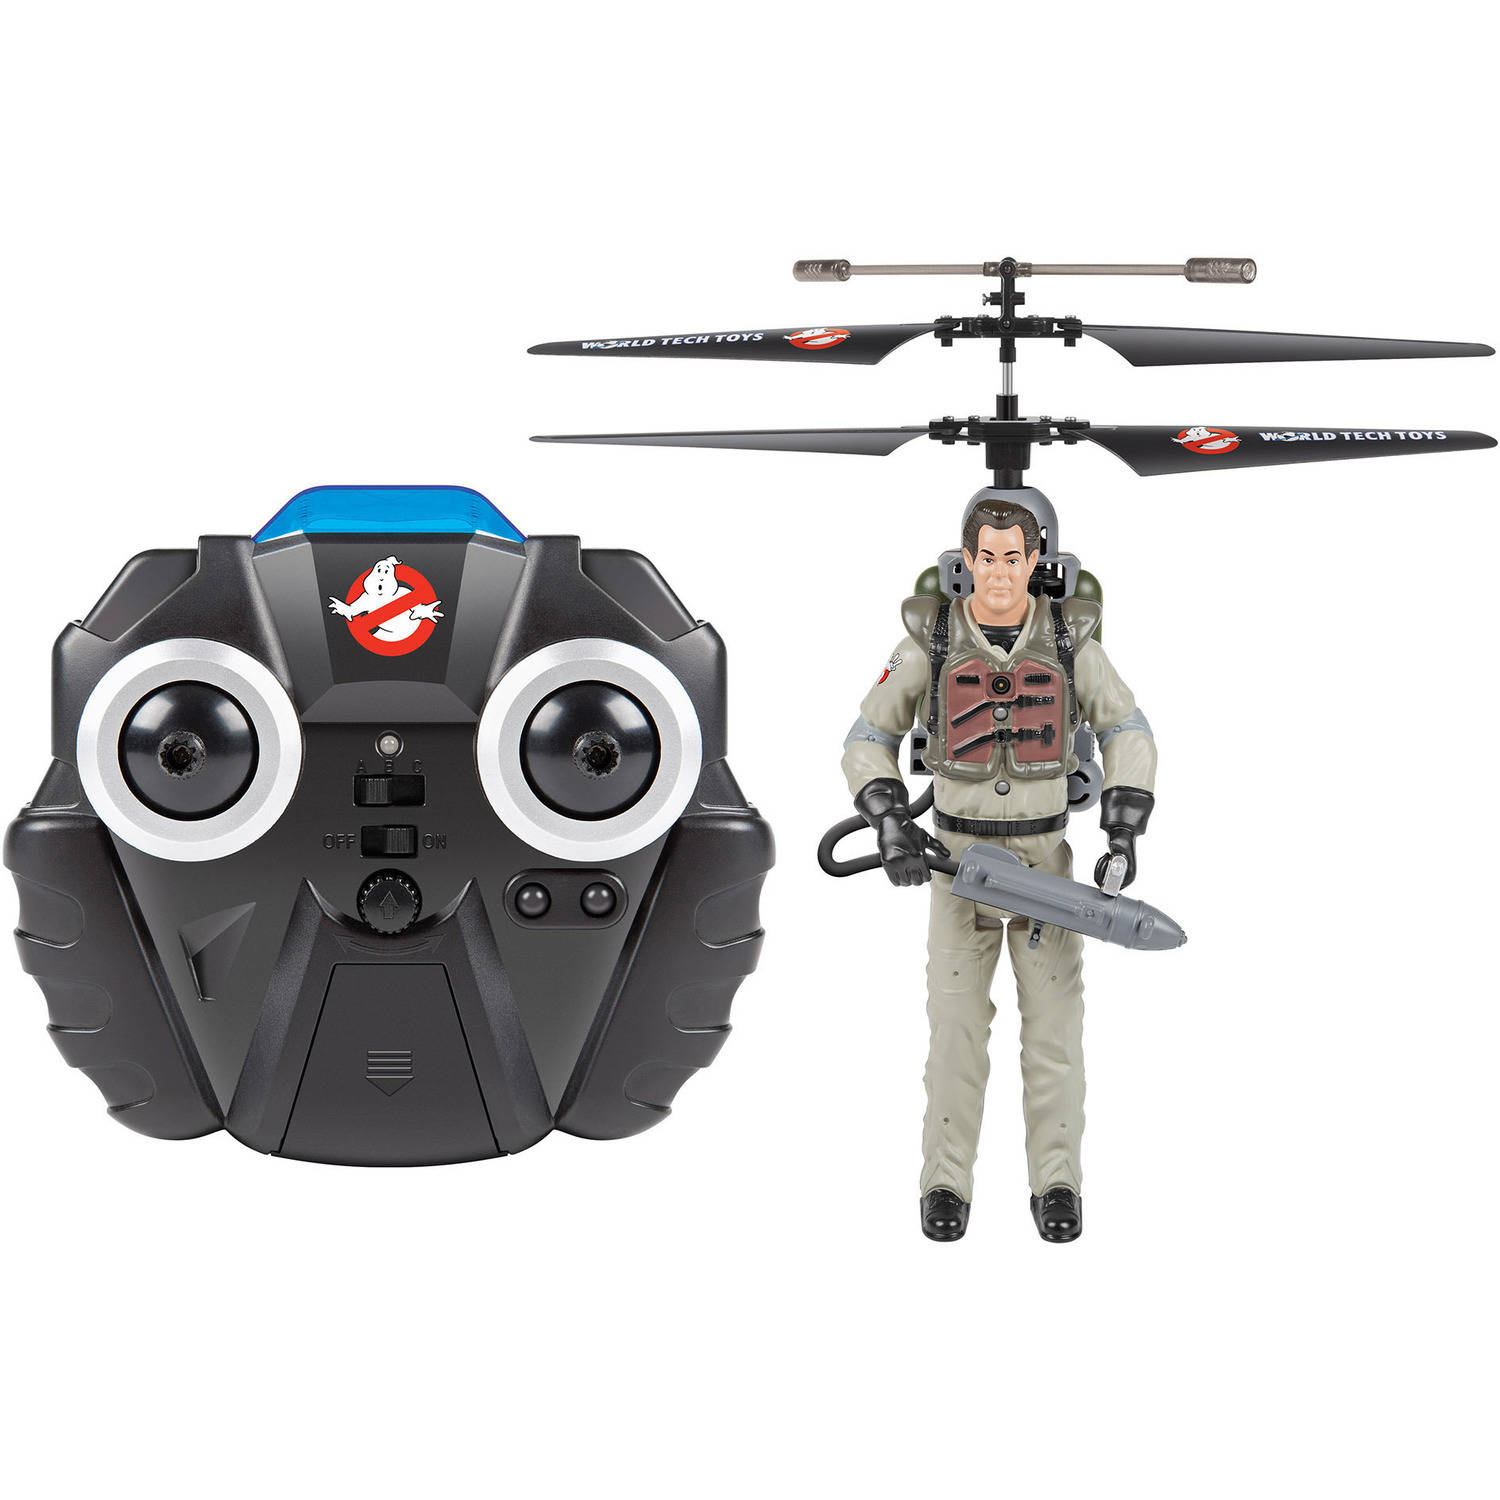 2-Channel Ray Ghostbusters IR Gyro Helicopter